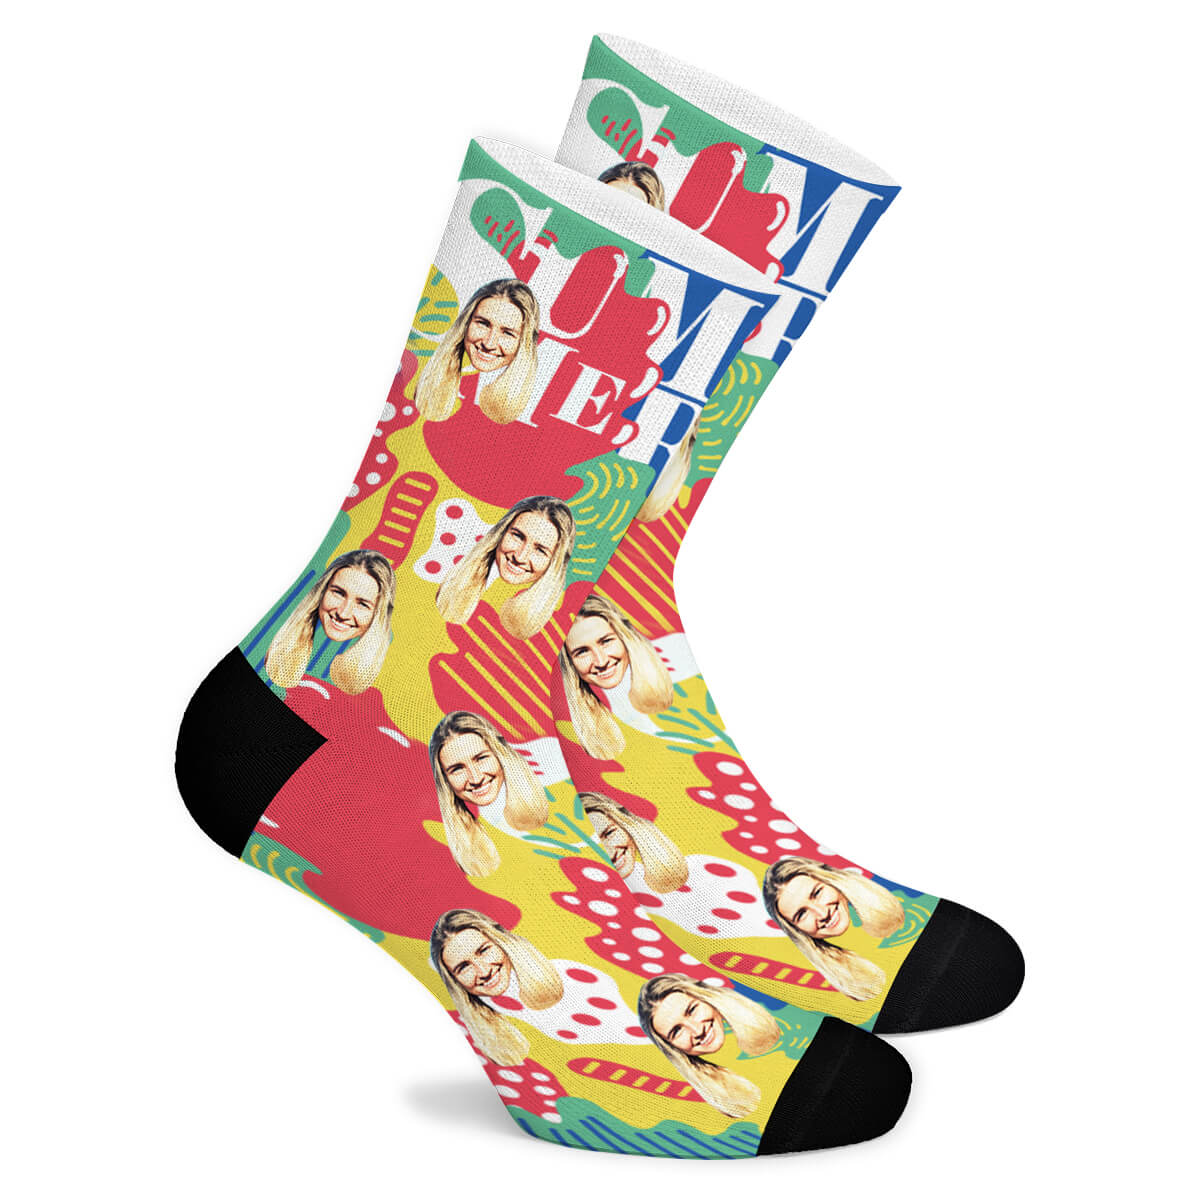 Summer Custom Socks - Make Face Socks